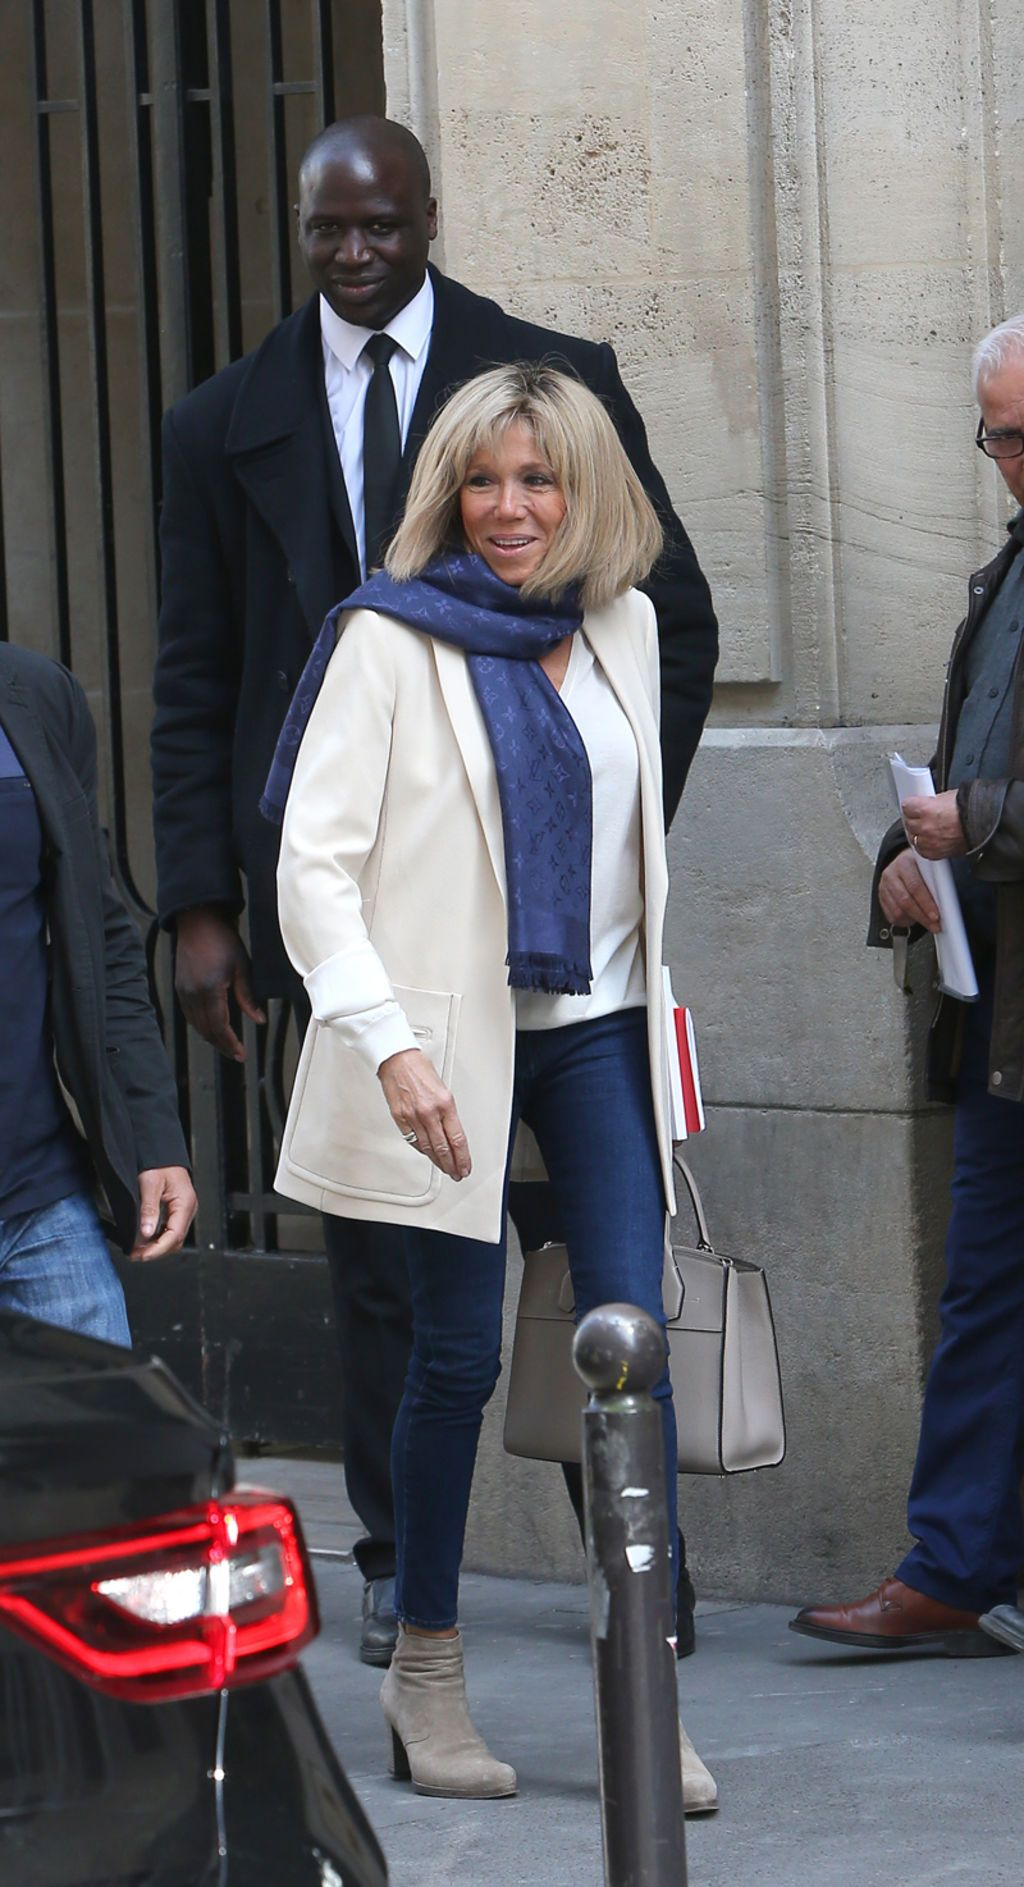 brigitte macron retour en images sur ses plus beaux. Black Bedroom Furniture Sets. Home Design Ideas